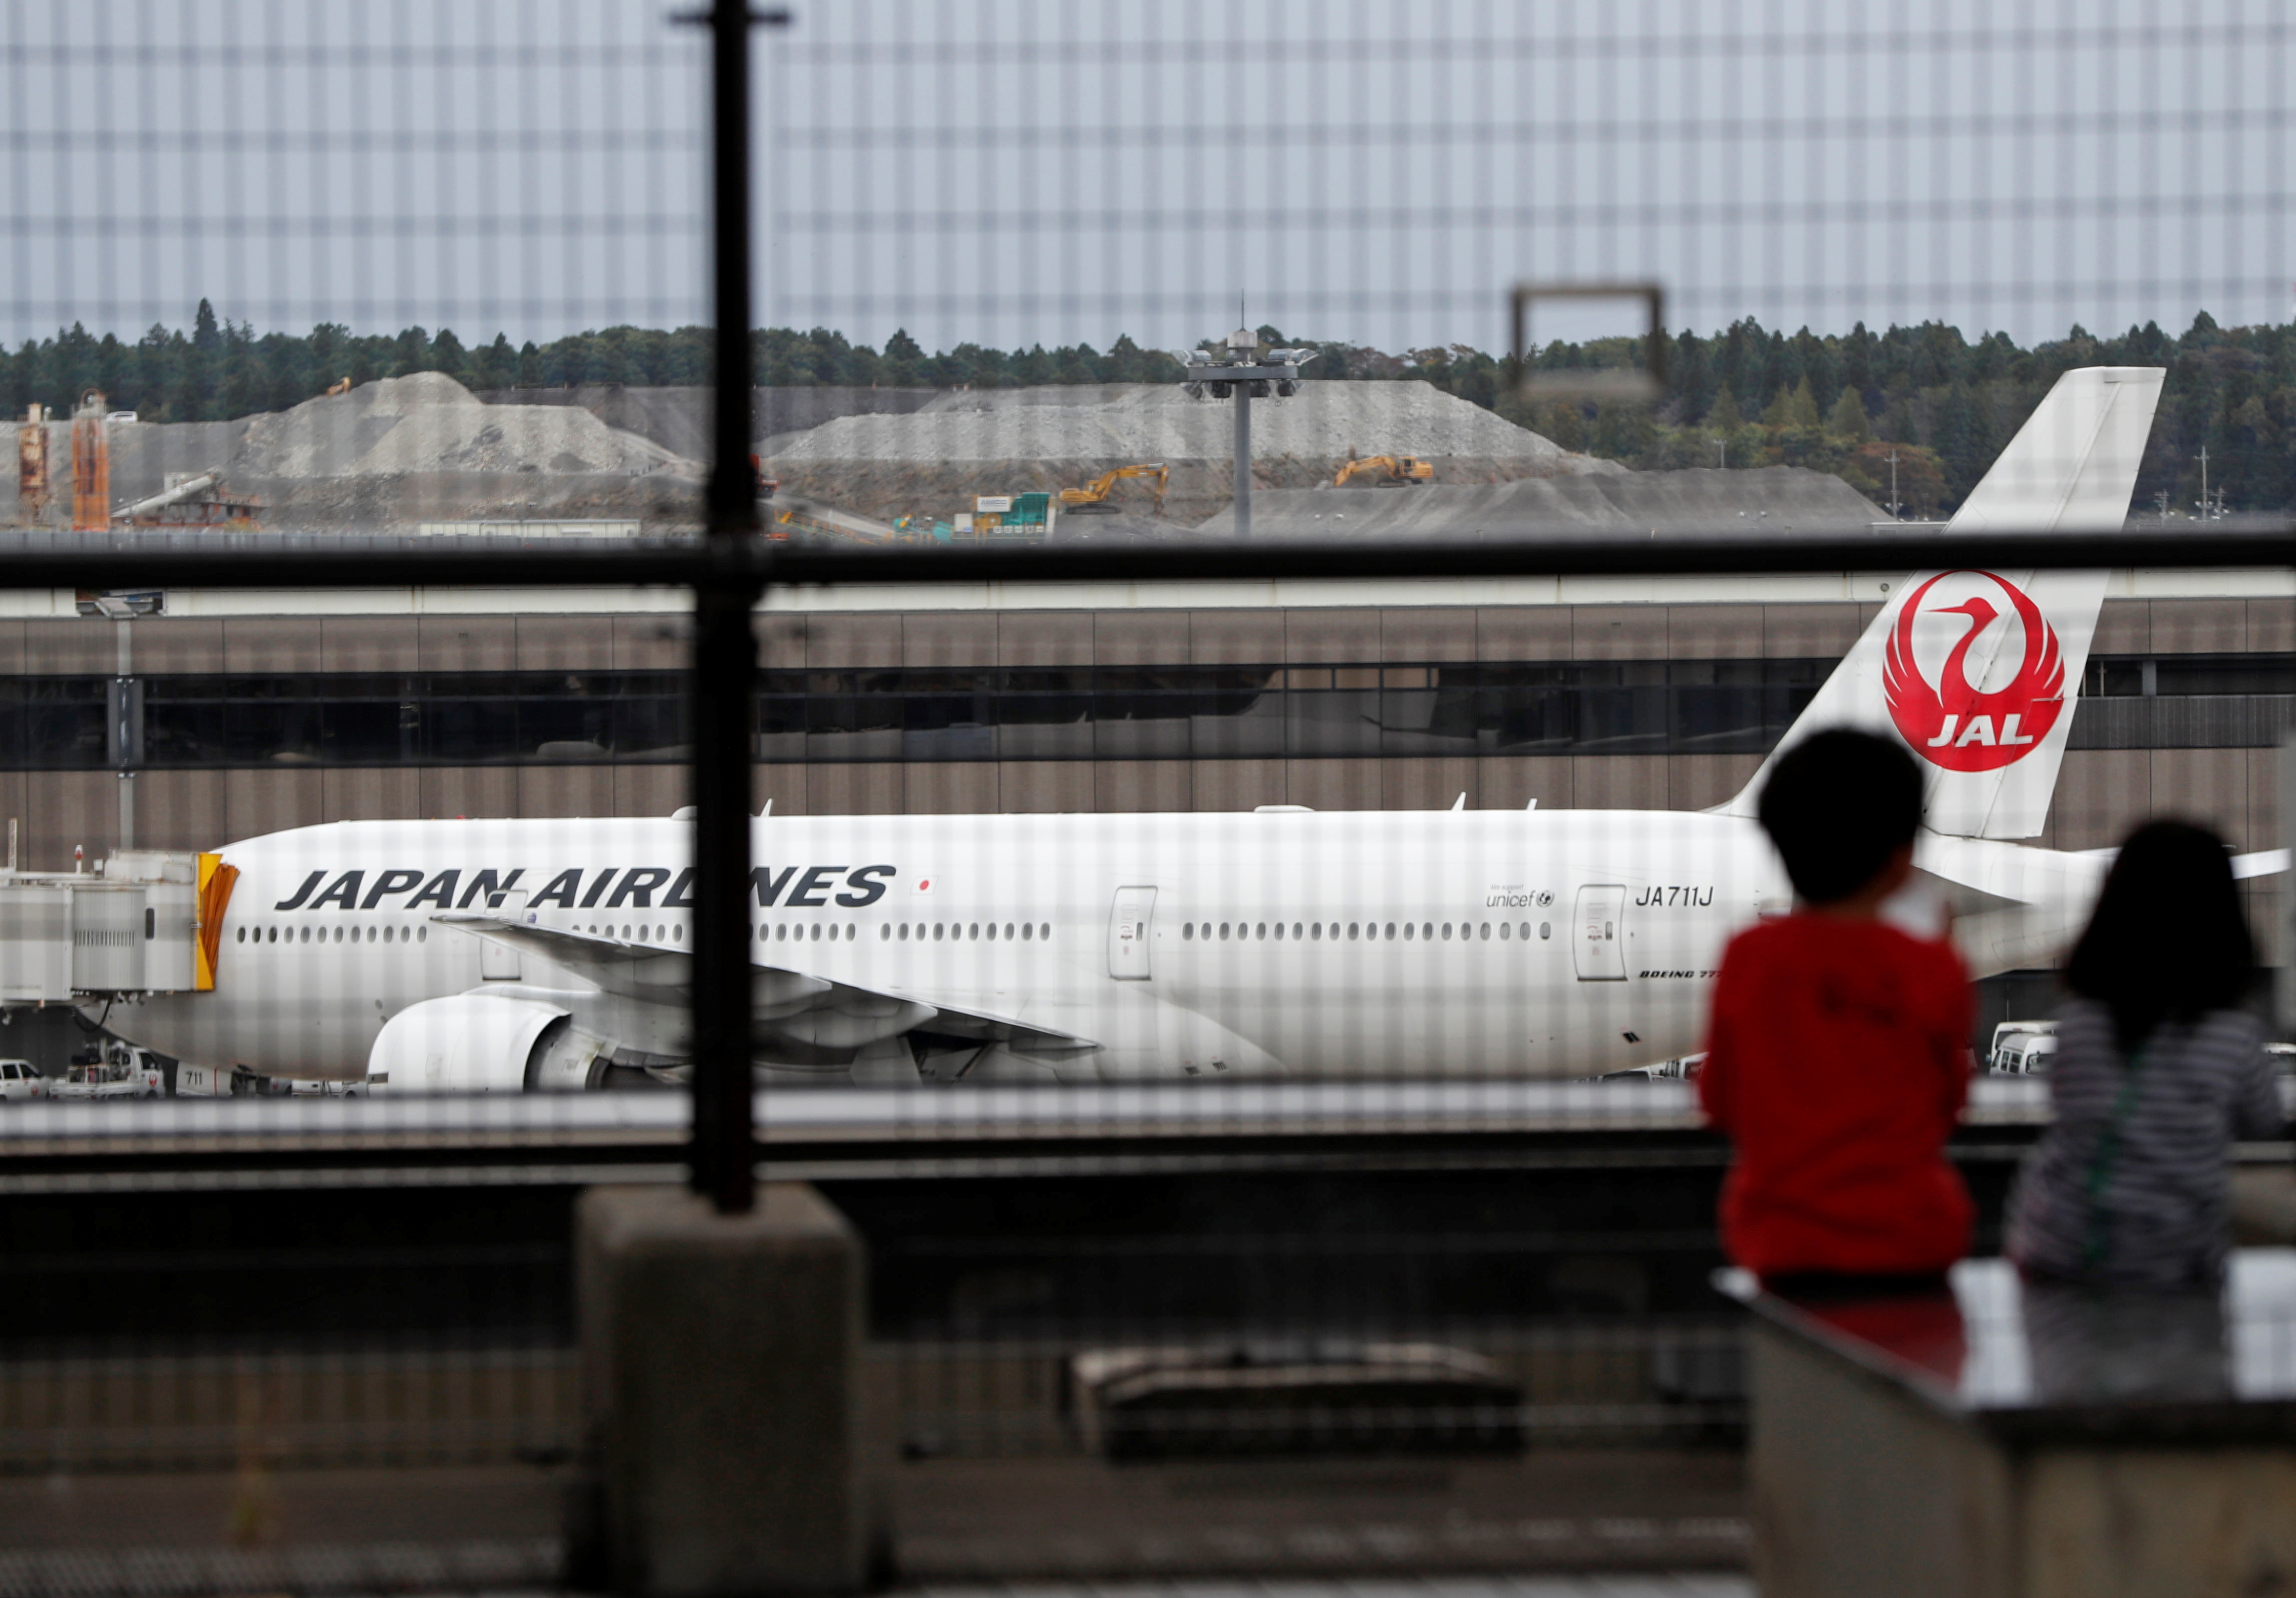 A Japan Airlines (JAL) airplane is seen at Narita international airport, where there are fewer passengers than usual amid the coronavirus disease (COVID-19) outbreak, in Narita, east of Tokyo, Japan November 2, 2020. REUTERS/Issei Kato